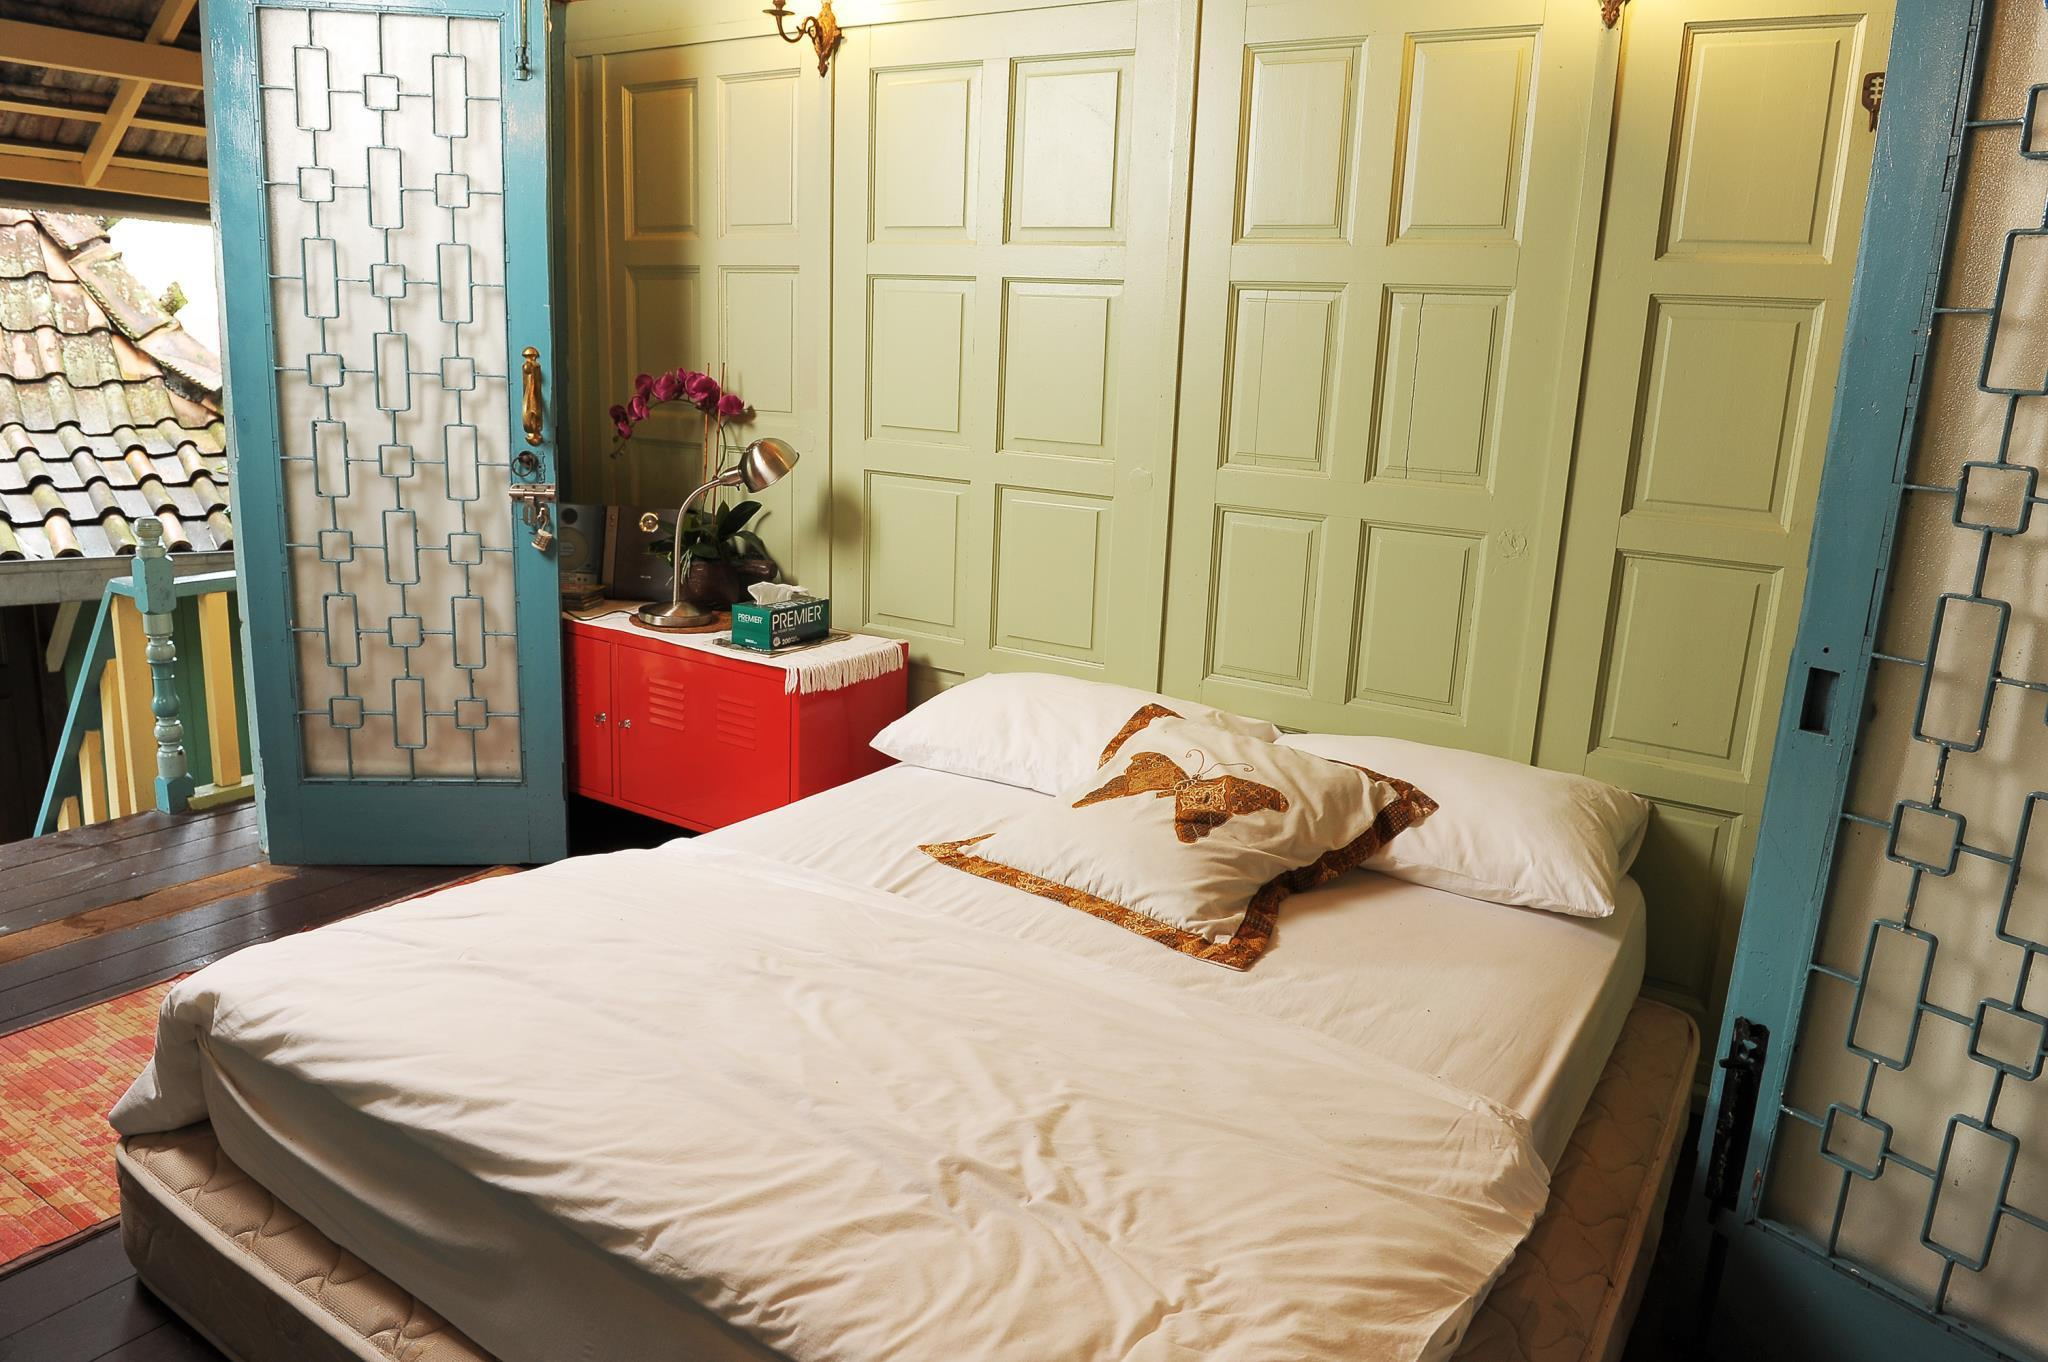 5 Twenty Ampang Hilir Guesthouse Best Price On Classic Malay House In Kuala Lumpur Reviews